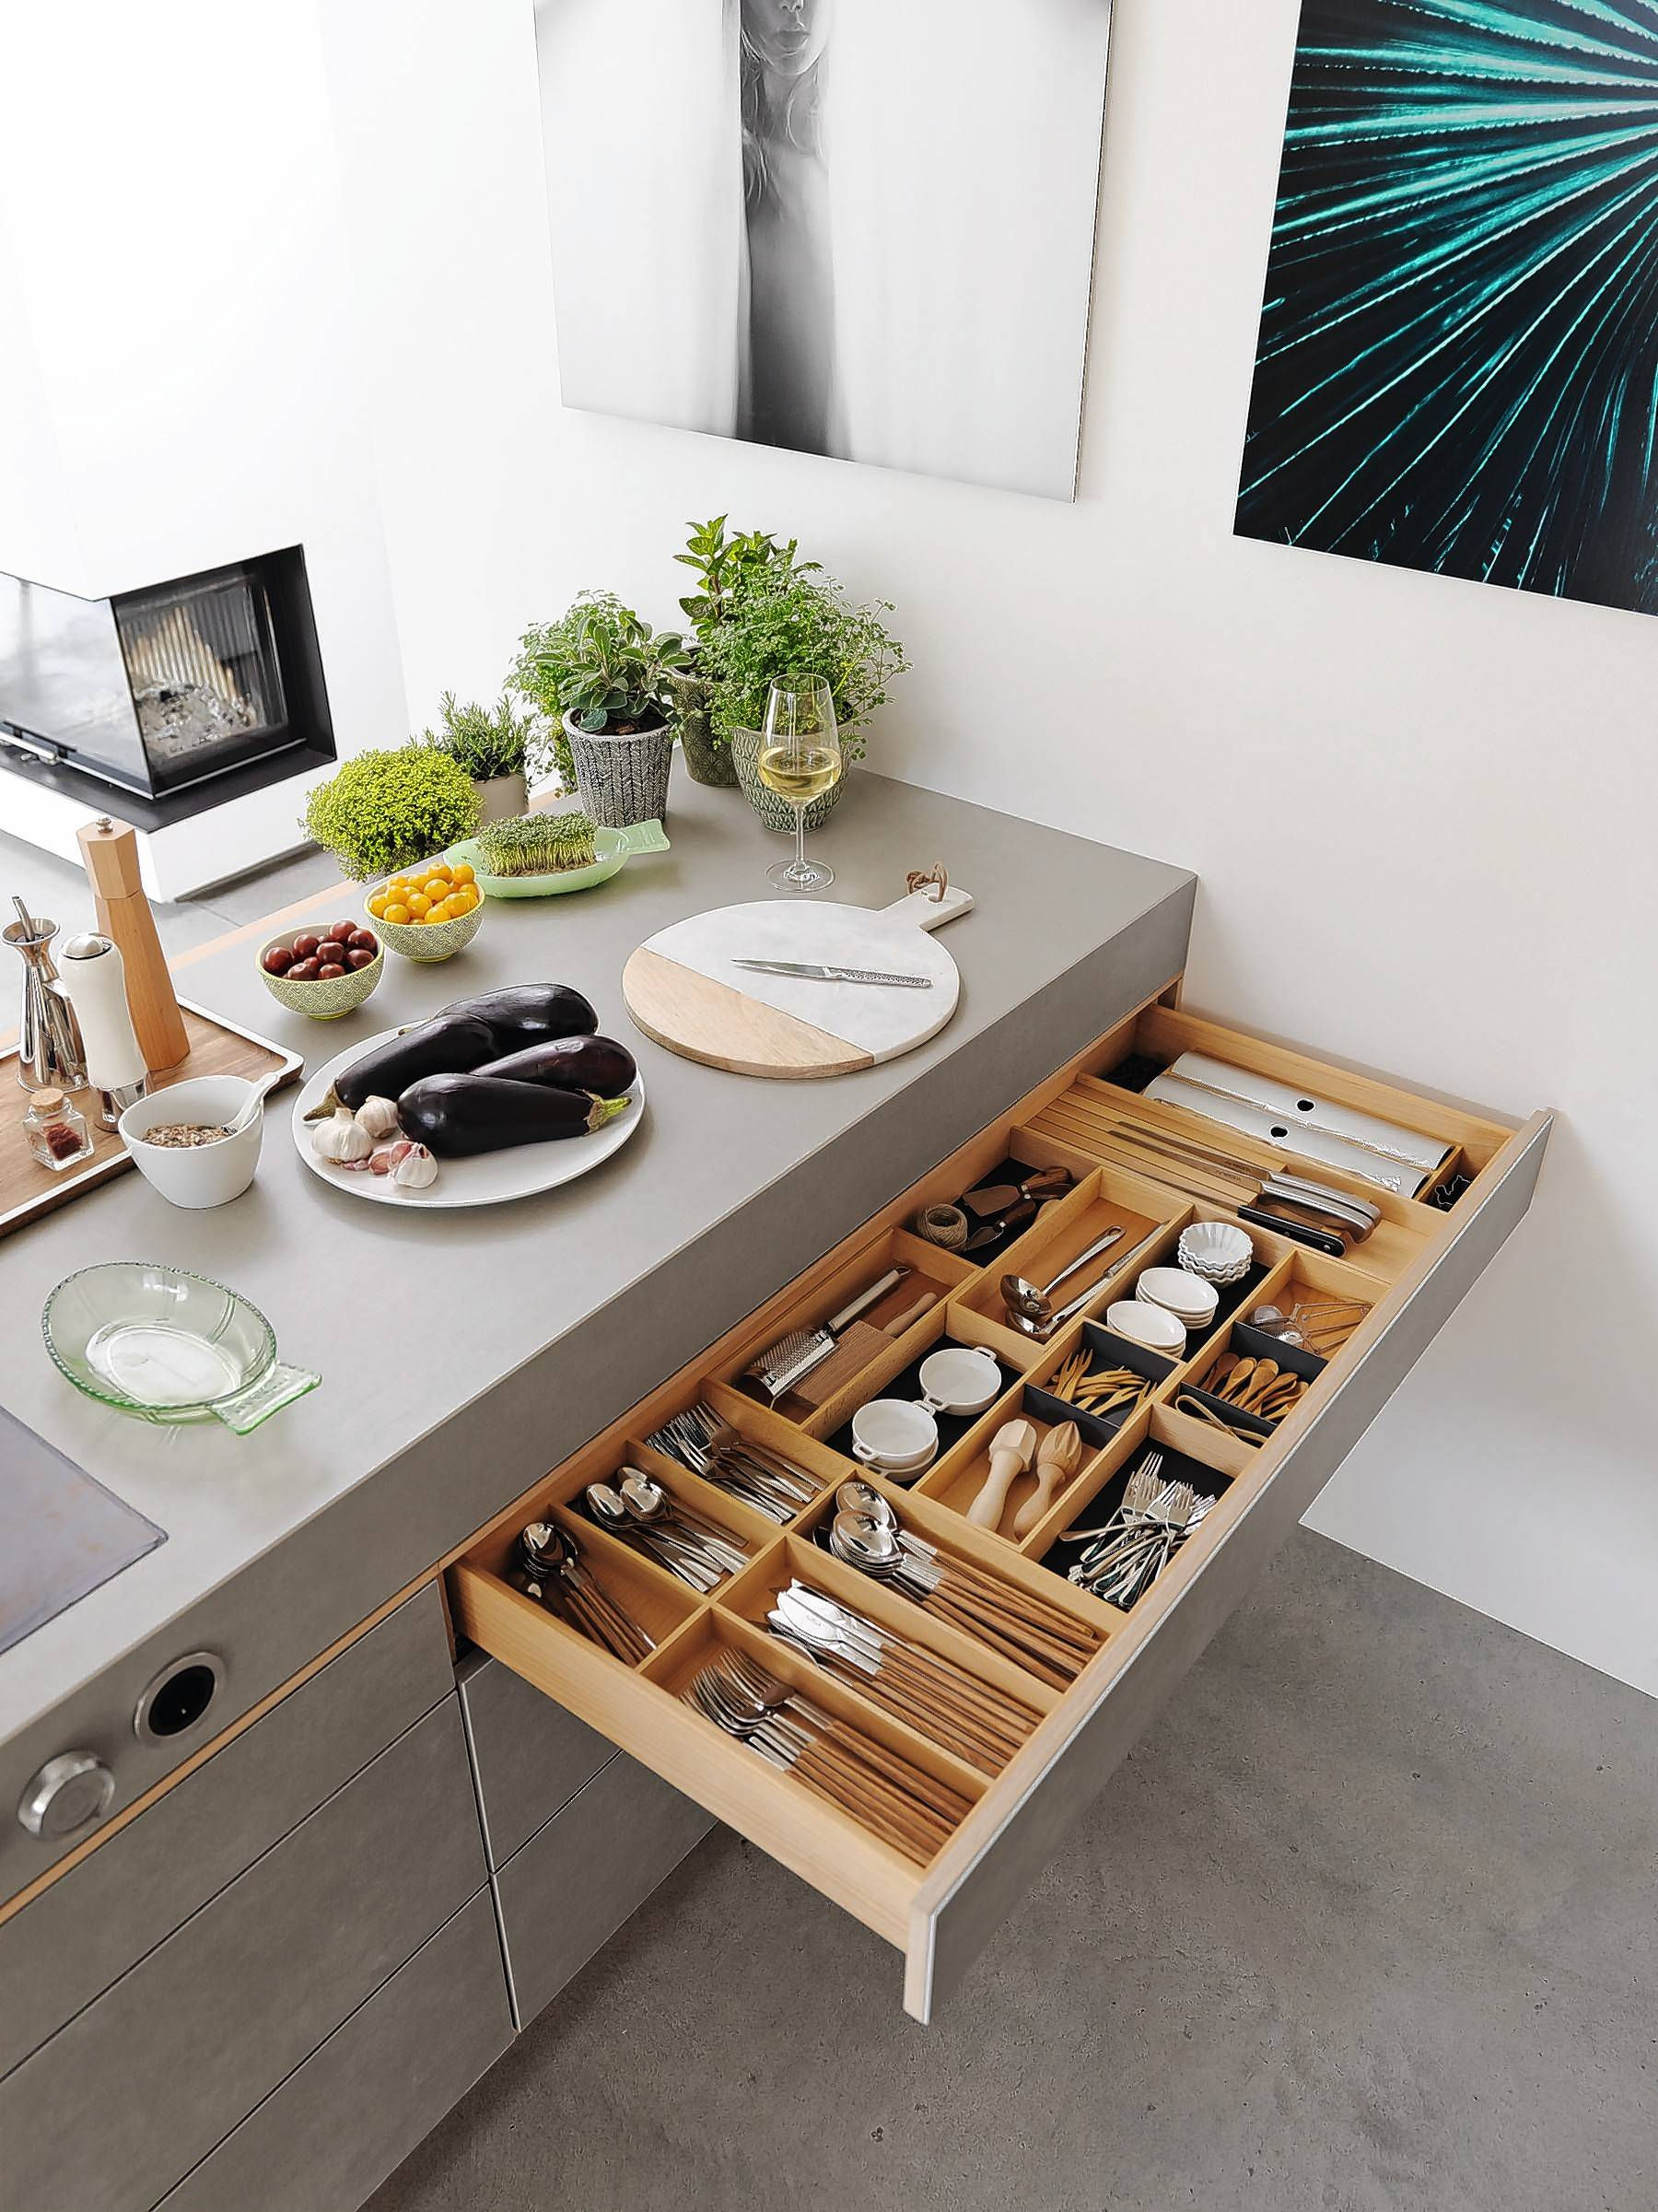 Kitchen drawer function is essential. This example offers a way to divide and organize a shallow drawer.